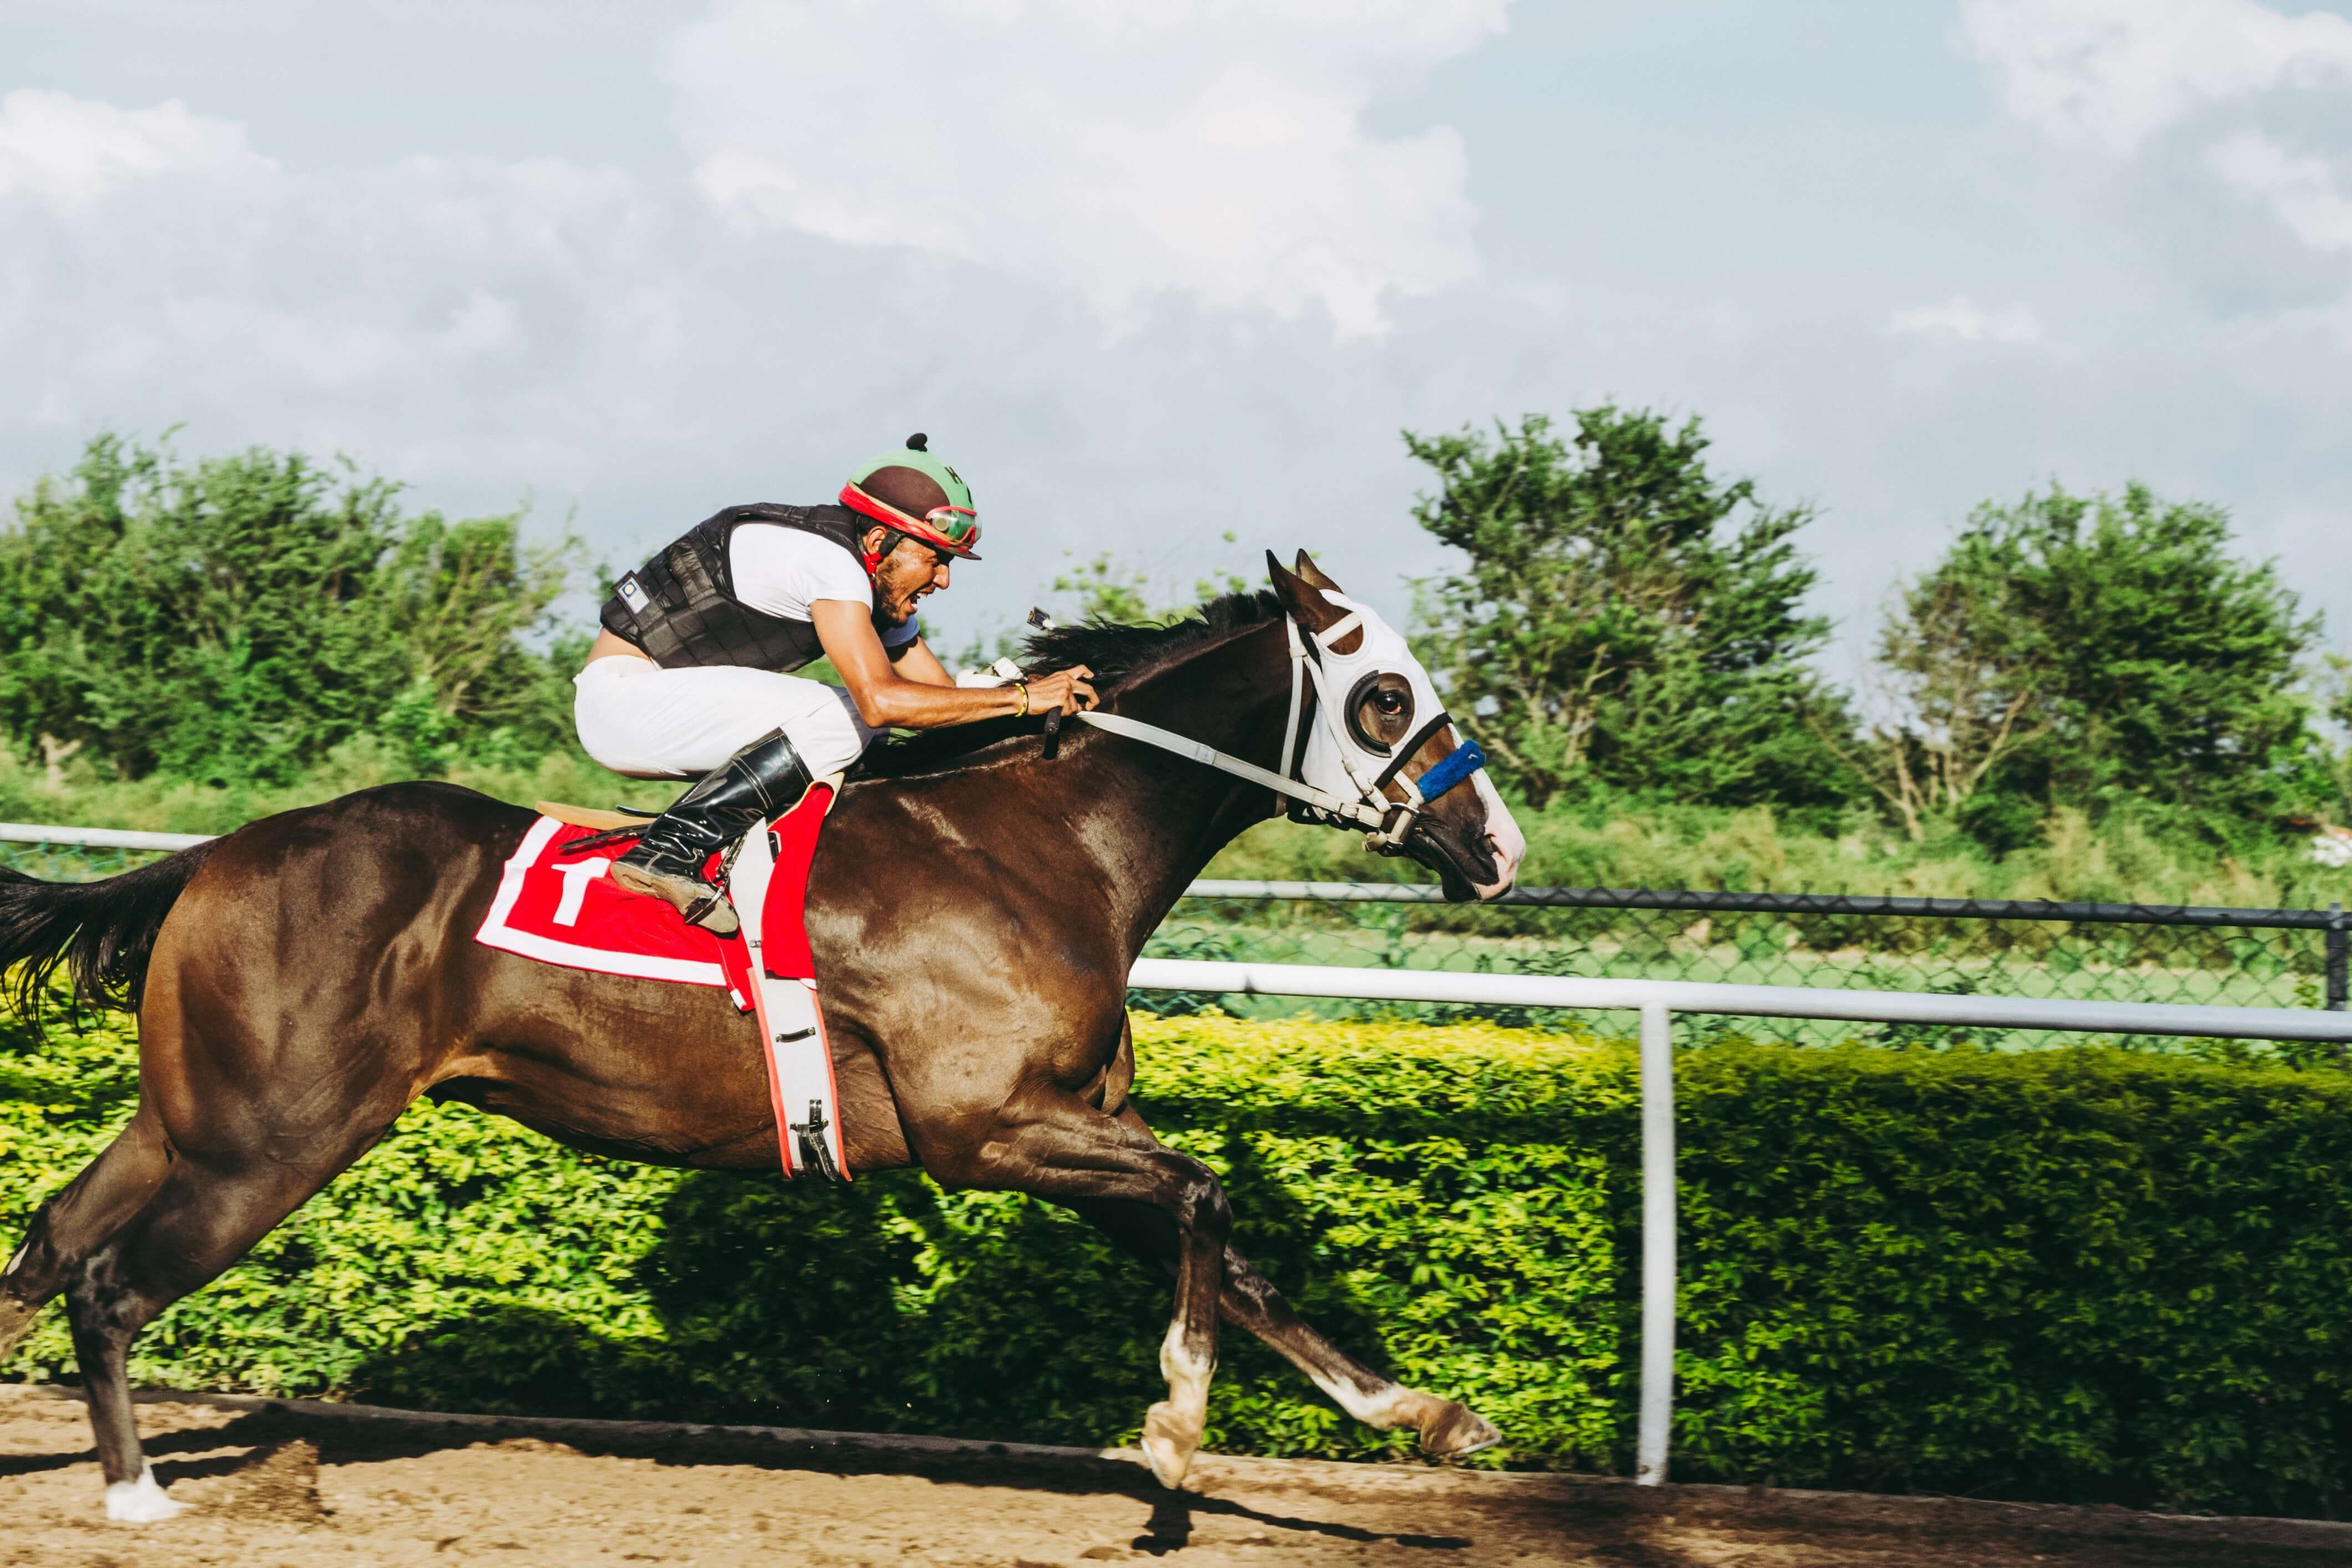 NV Horse Racing Betting - Bet on Horses in Nevada